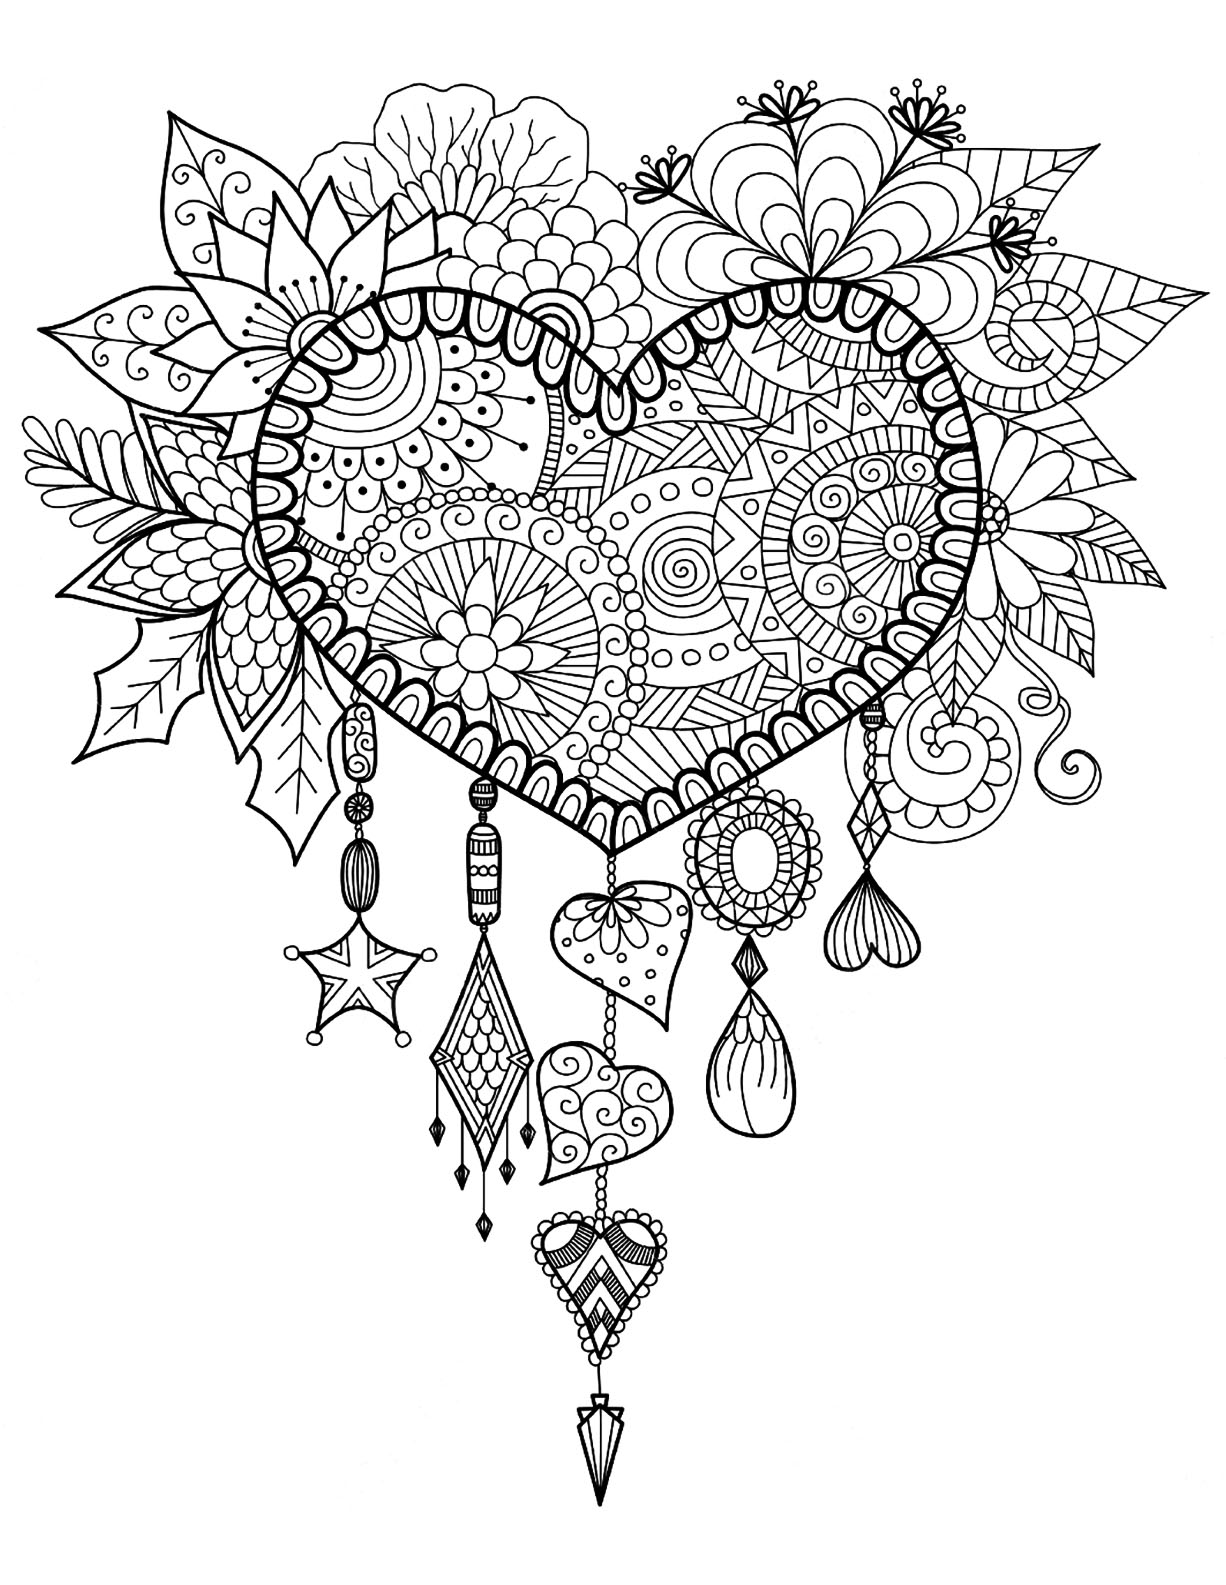 Locked Heart ぬりえ | Free Printable Coloring Pages | 1585x1226